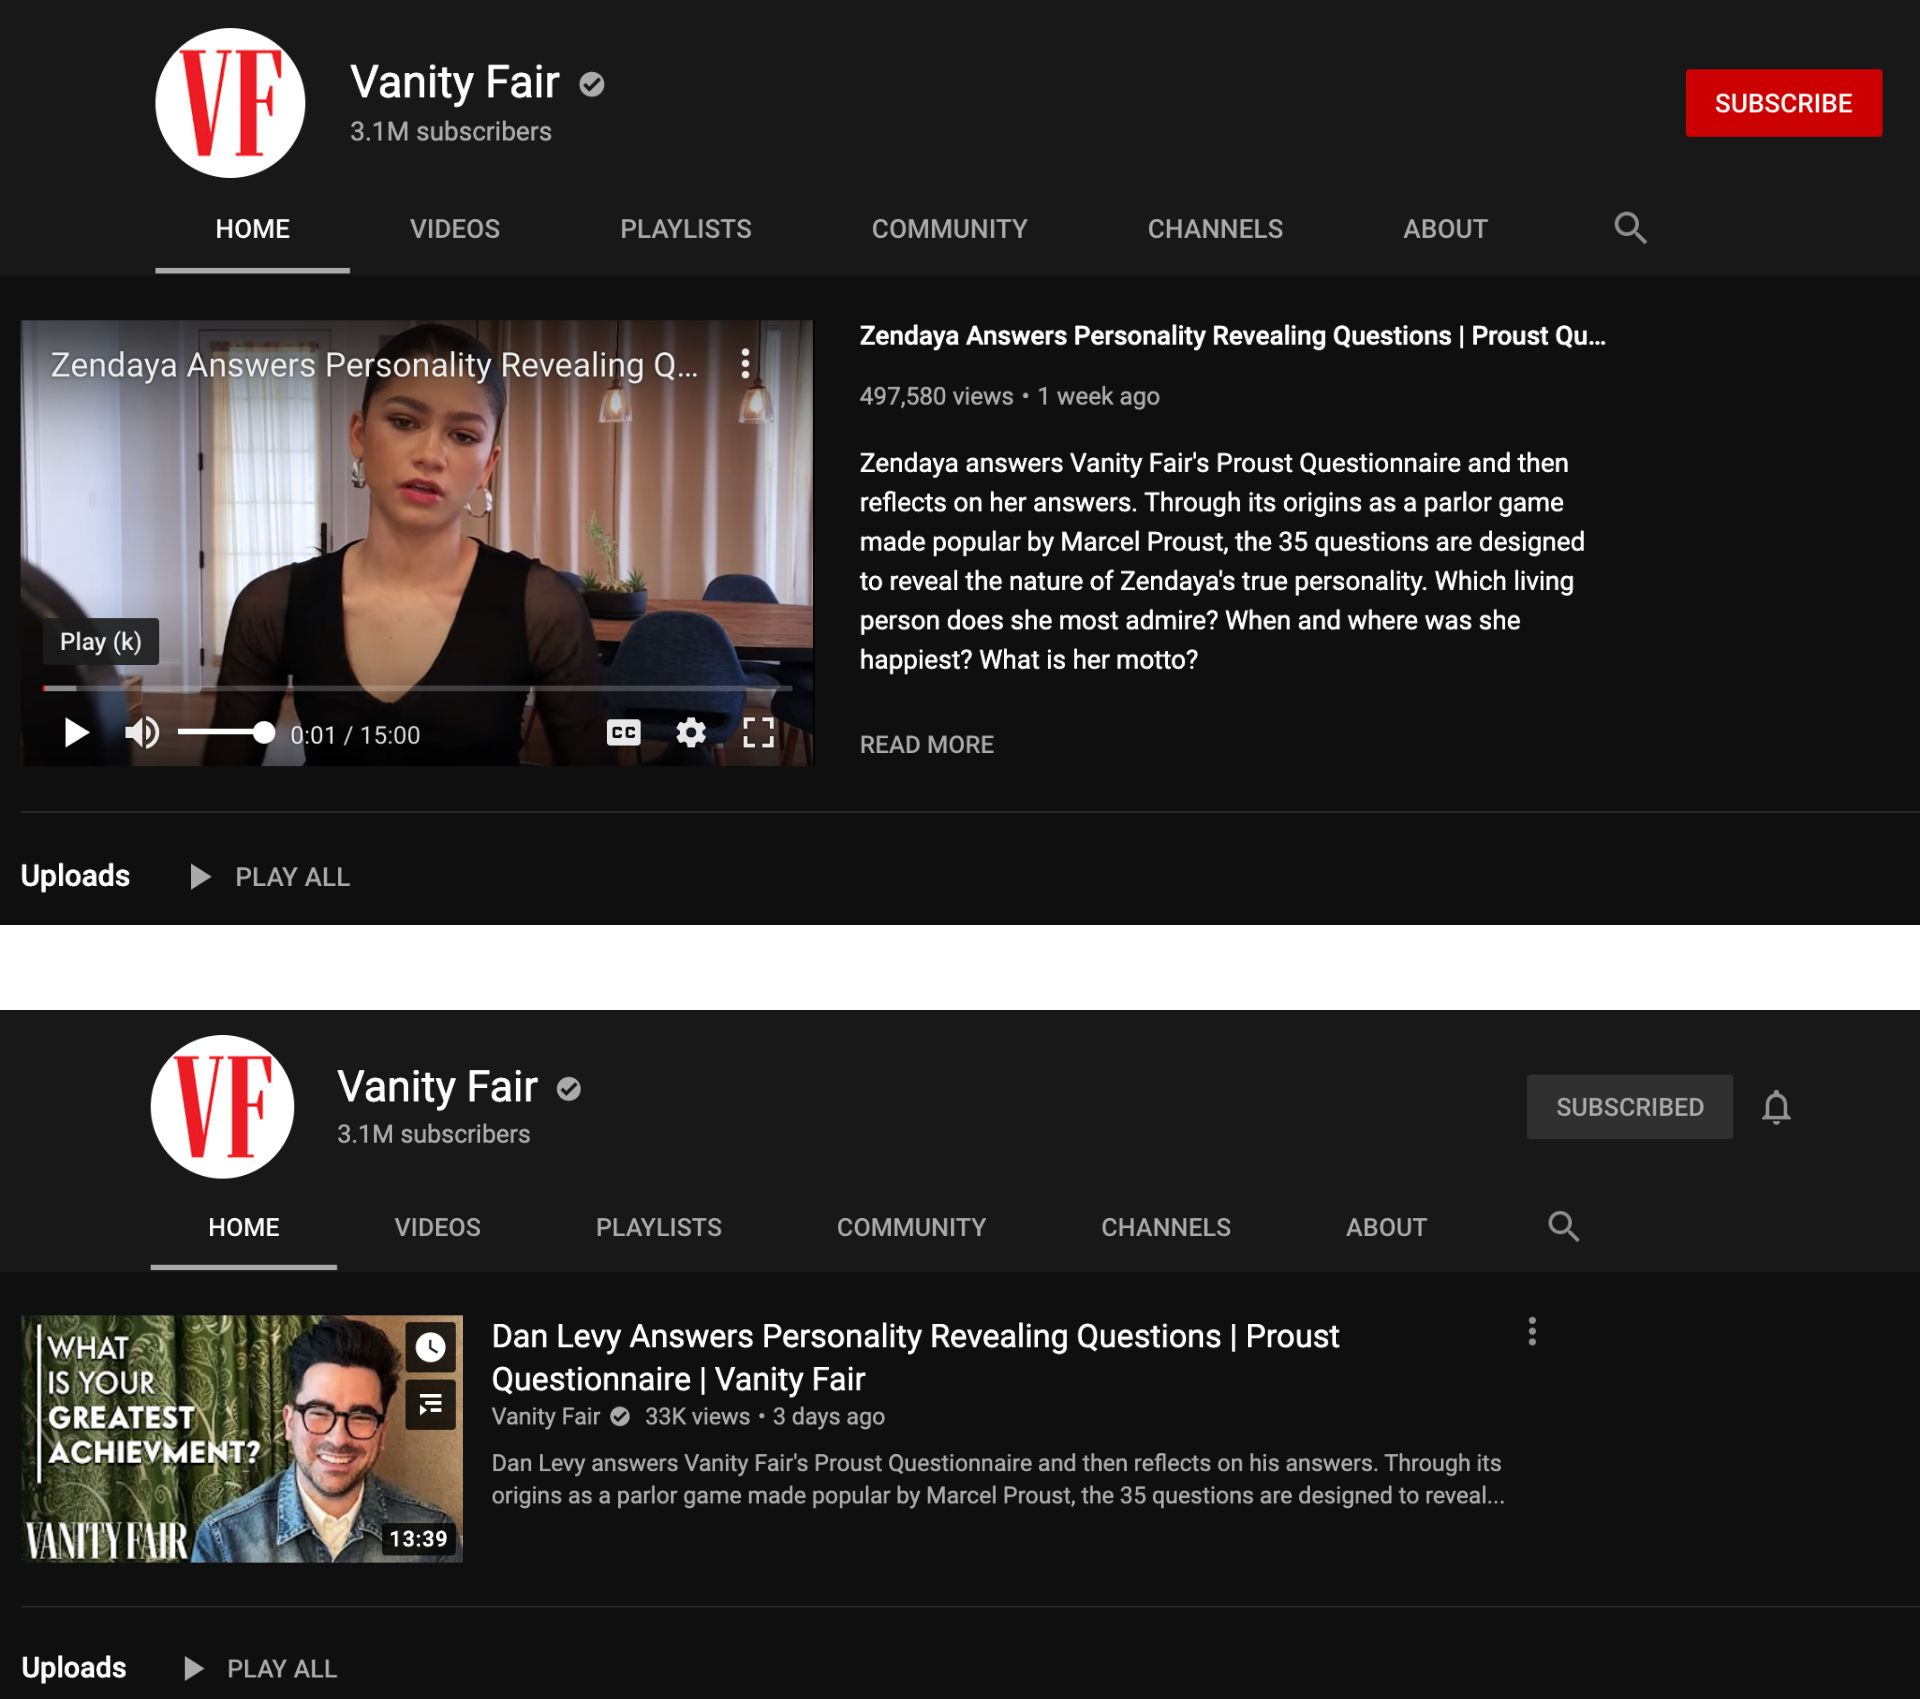 Screenshots of the Vanity Fair YouTube channel, one as a non-subscriber and one as a subscriber.